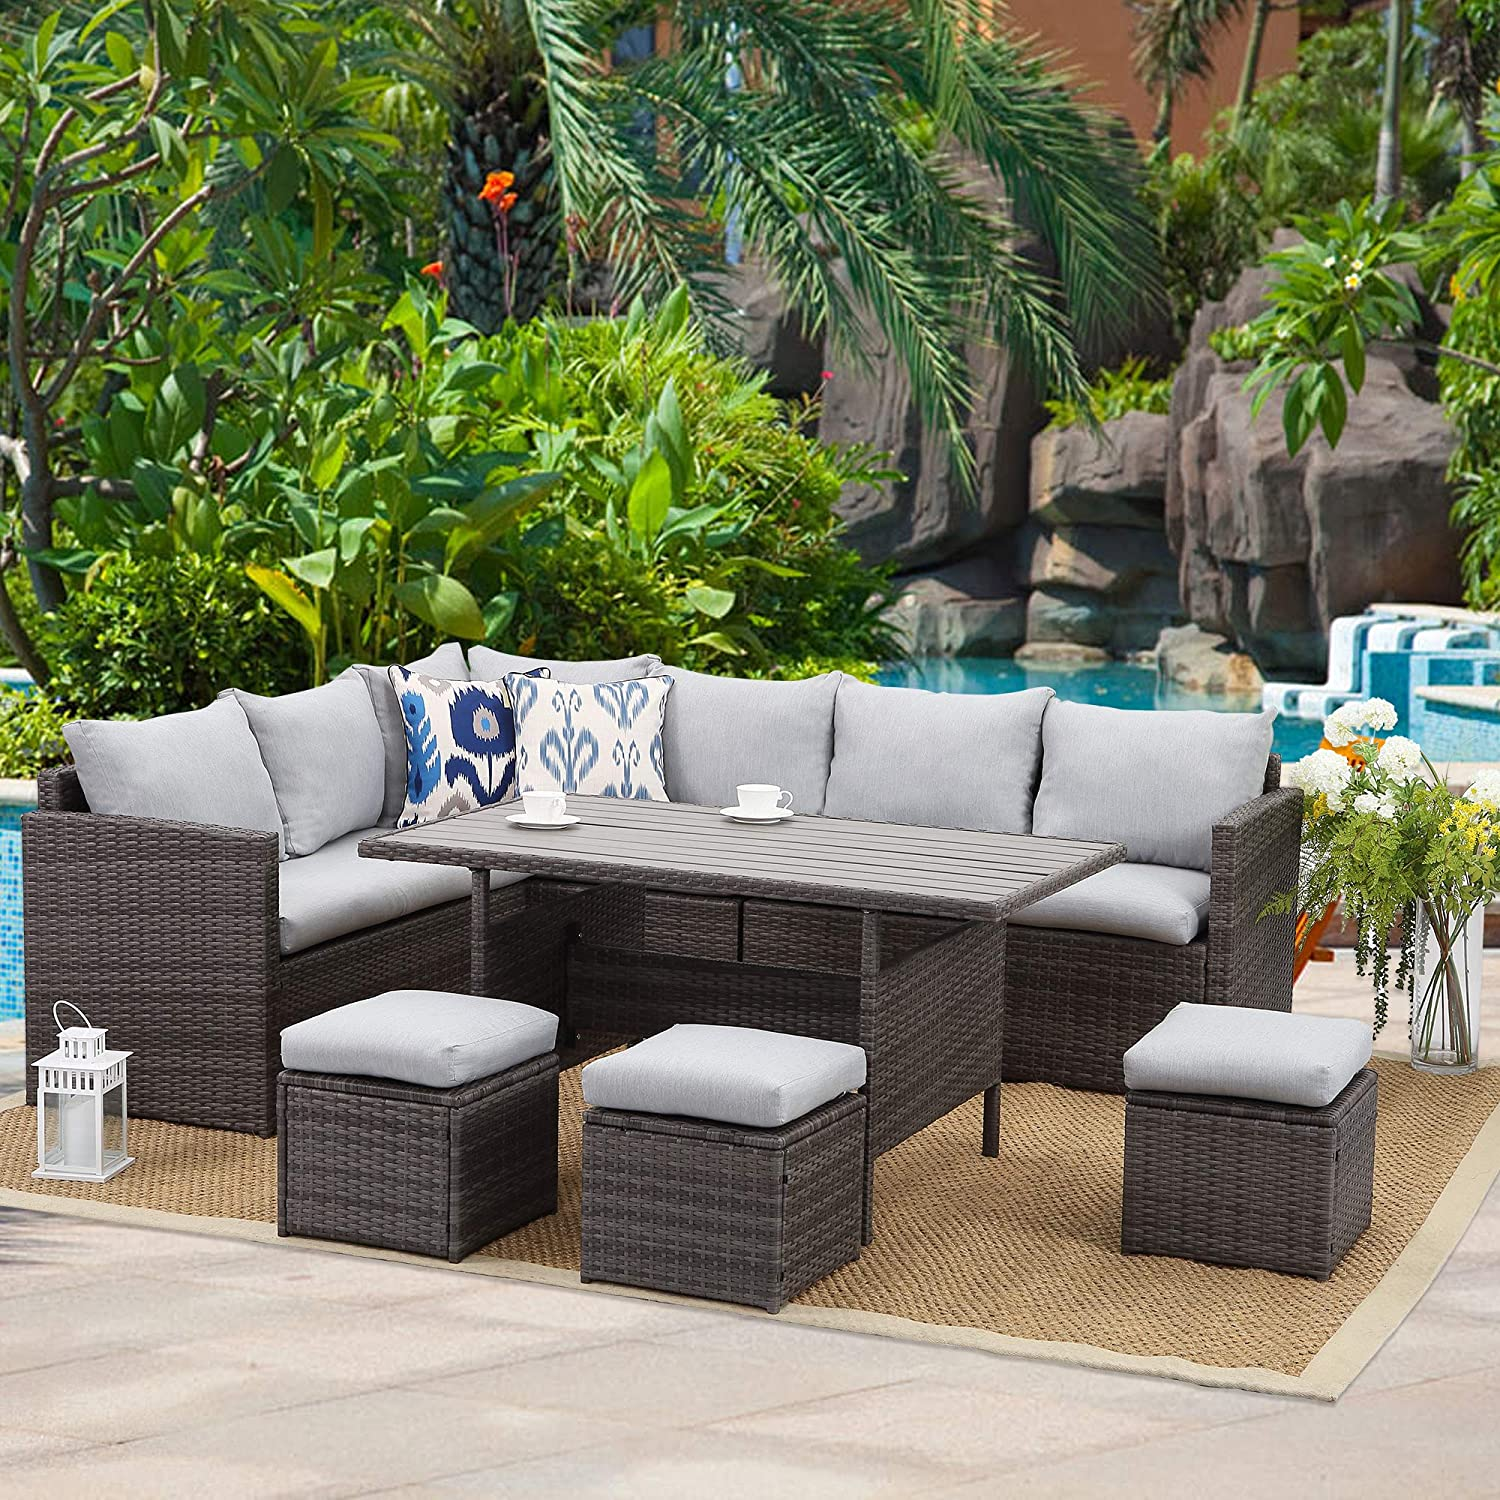 Wisteria Lane Patio Furniture Set,7 PCS Outdoor Conversation Set All Weather Wicker Sectional Sofa Couch Dining Table Chair with Ottoman, Light Grey